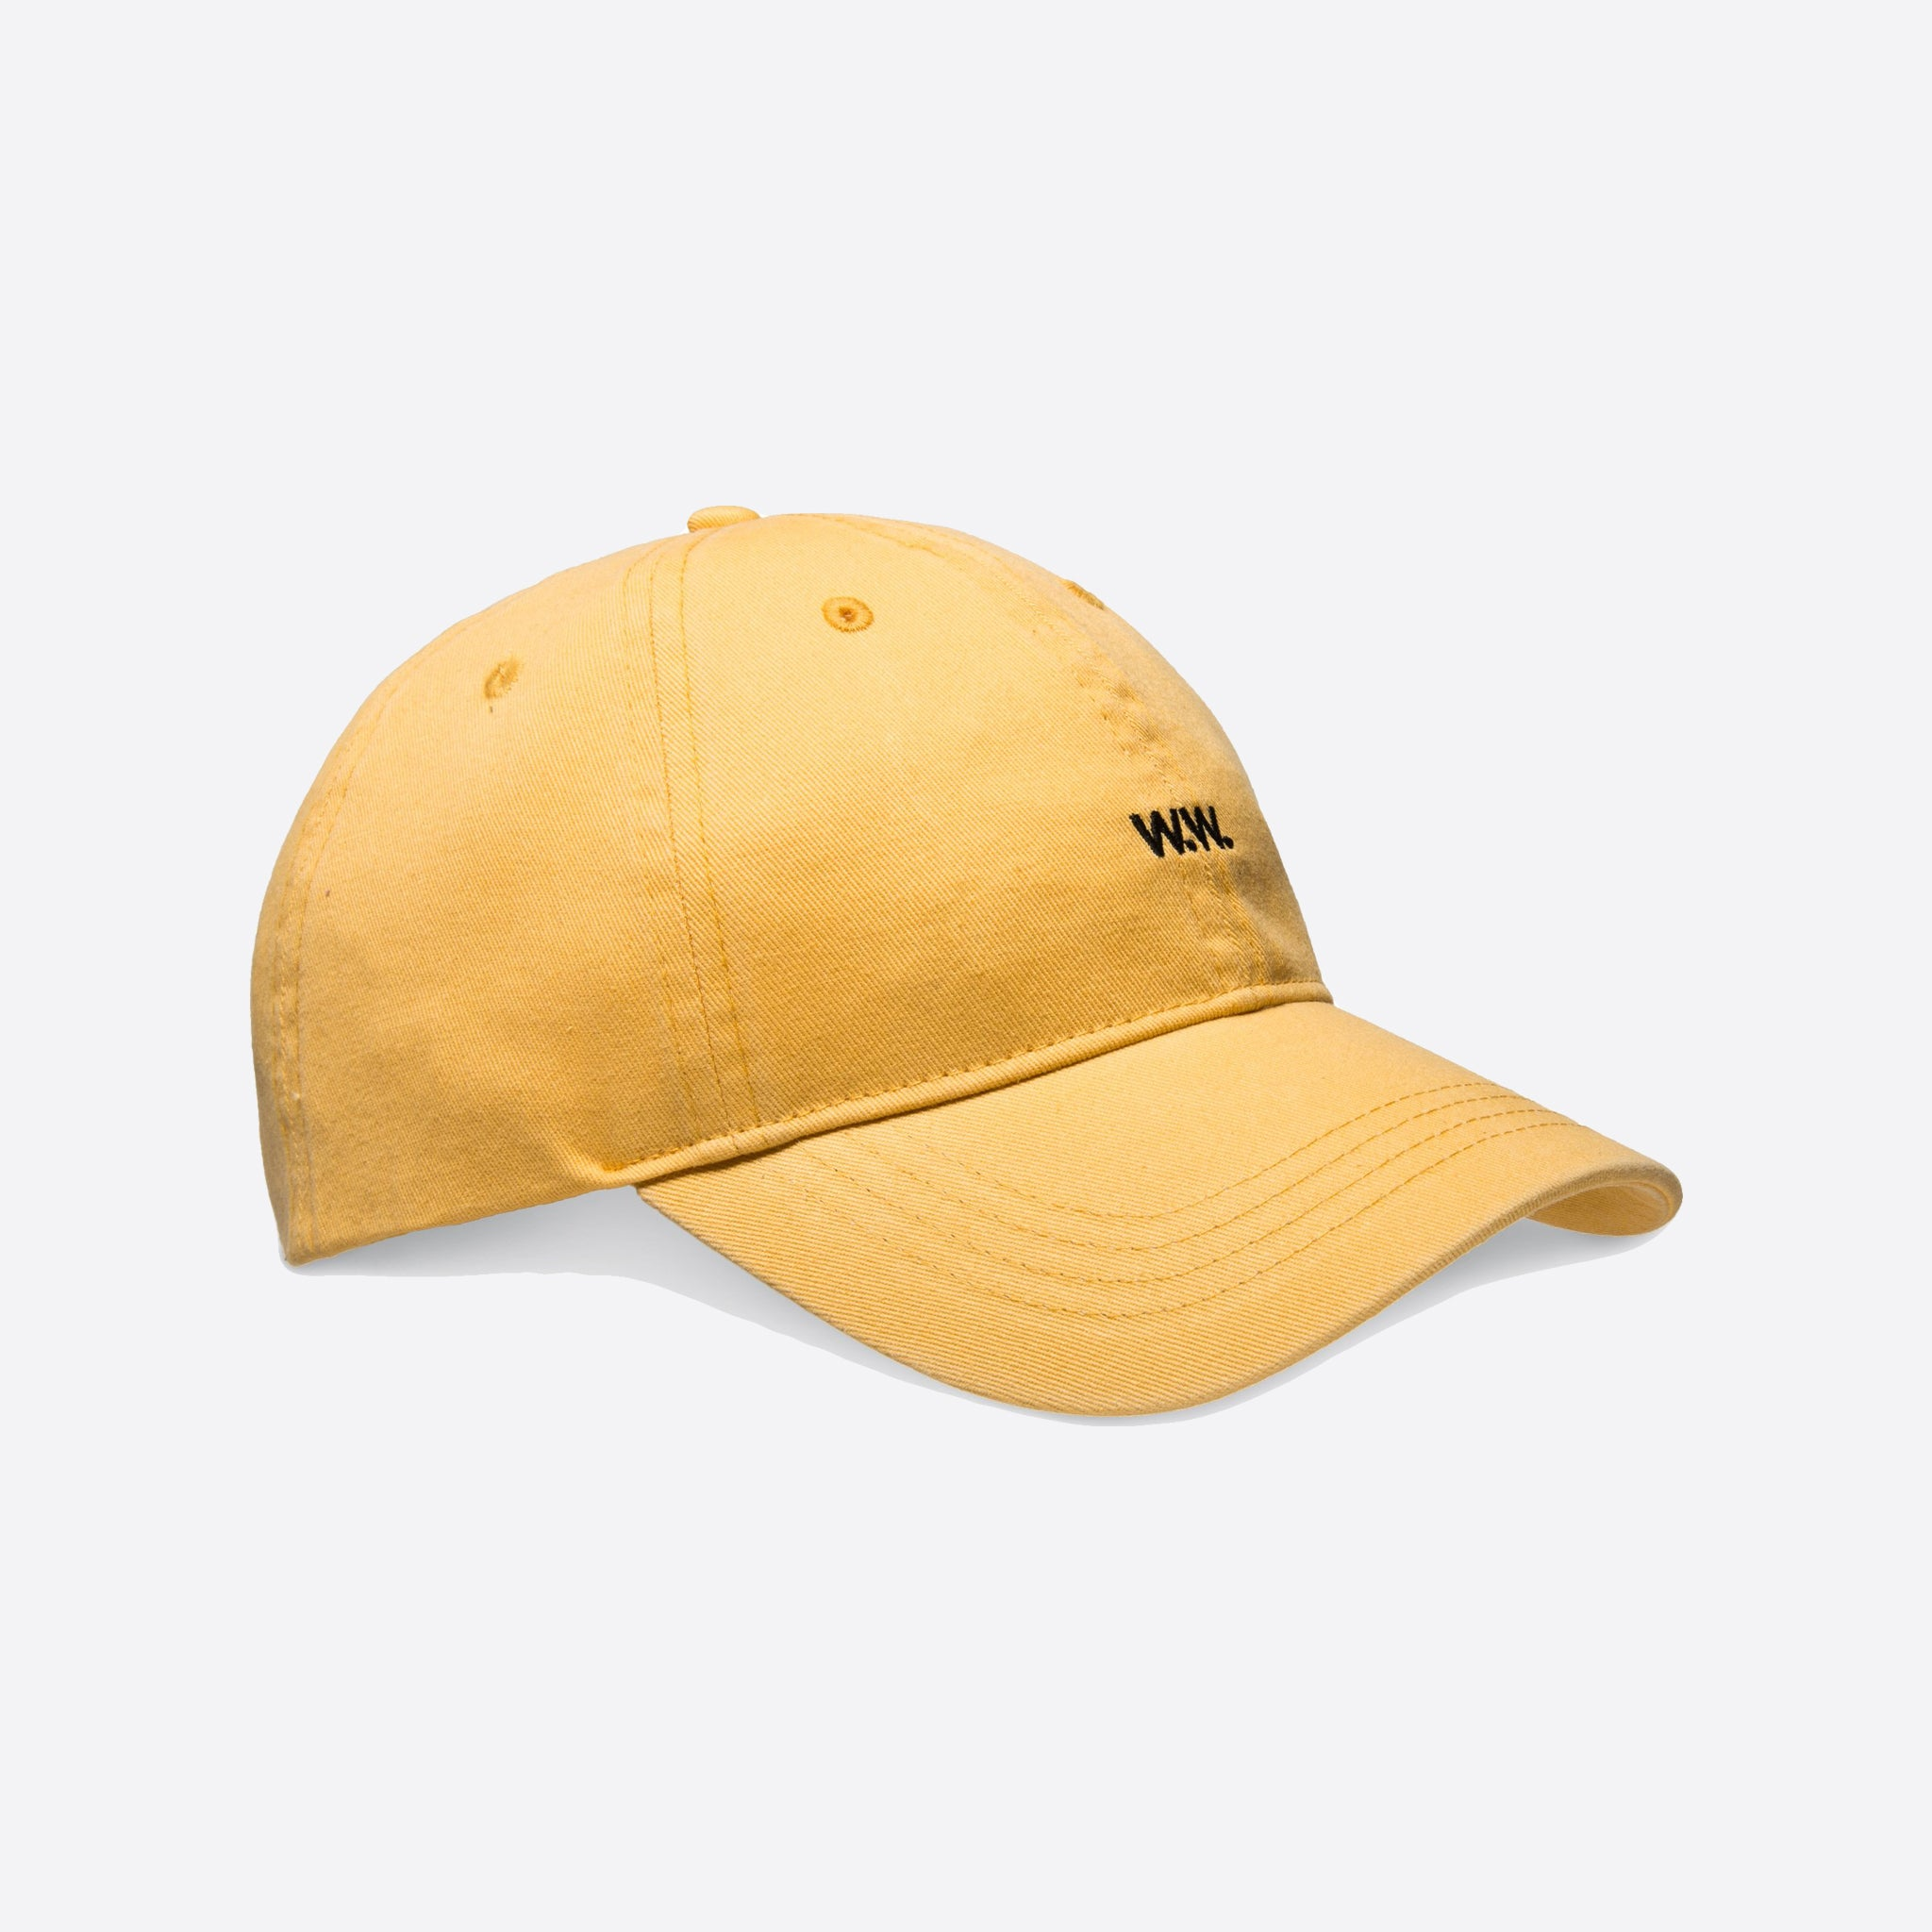 Wood Wood Low Profile Cap in Yellow — Our Daily Edit 84be23ed4f51